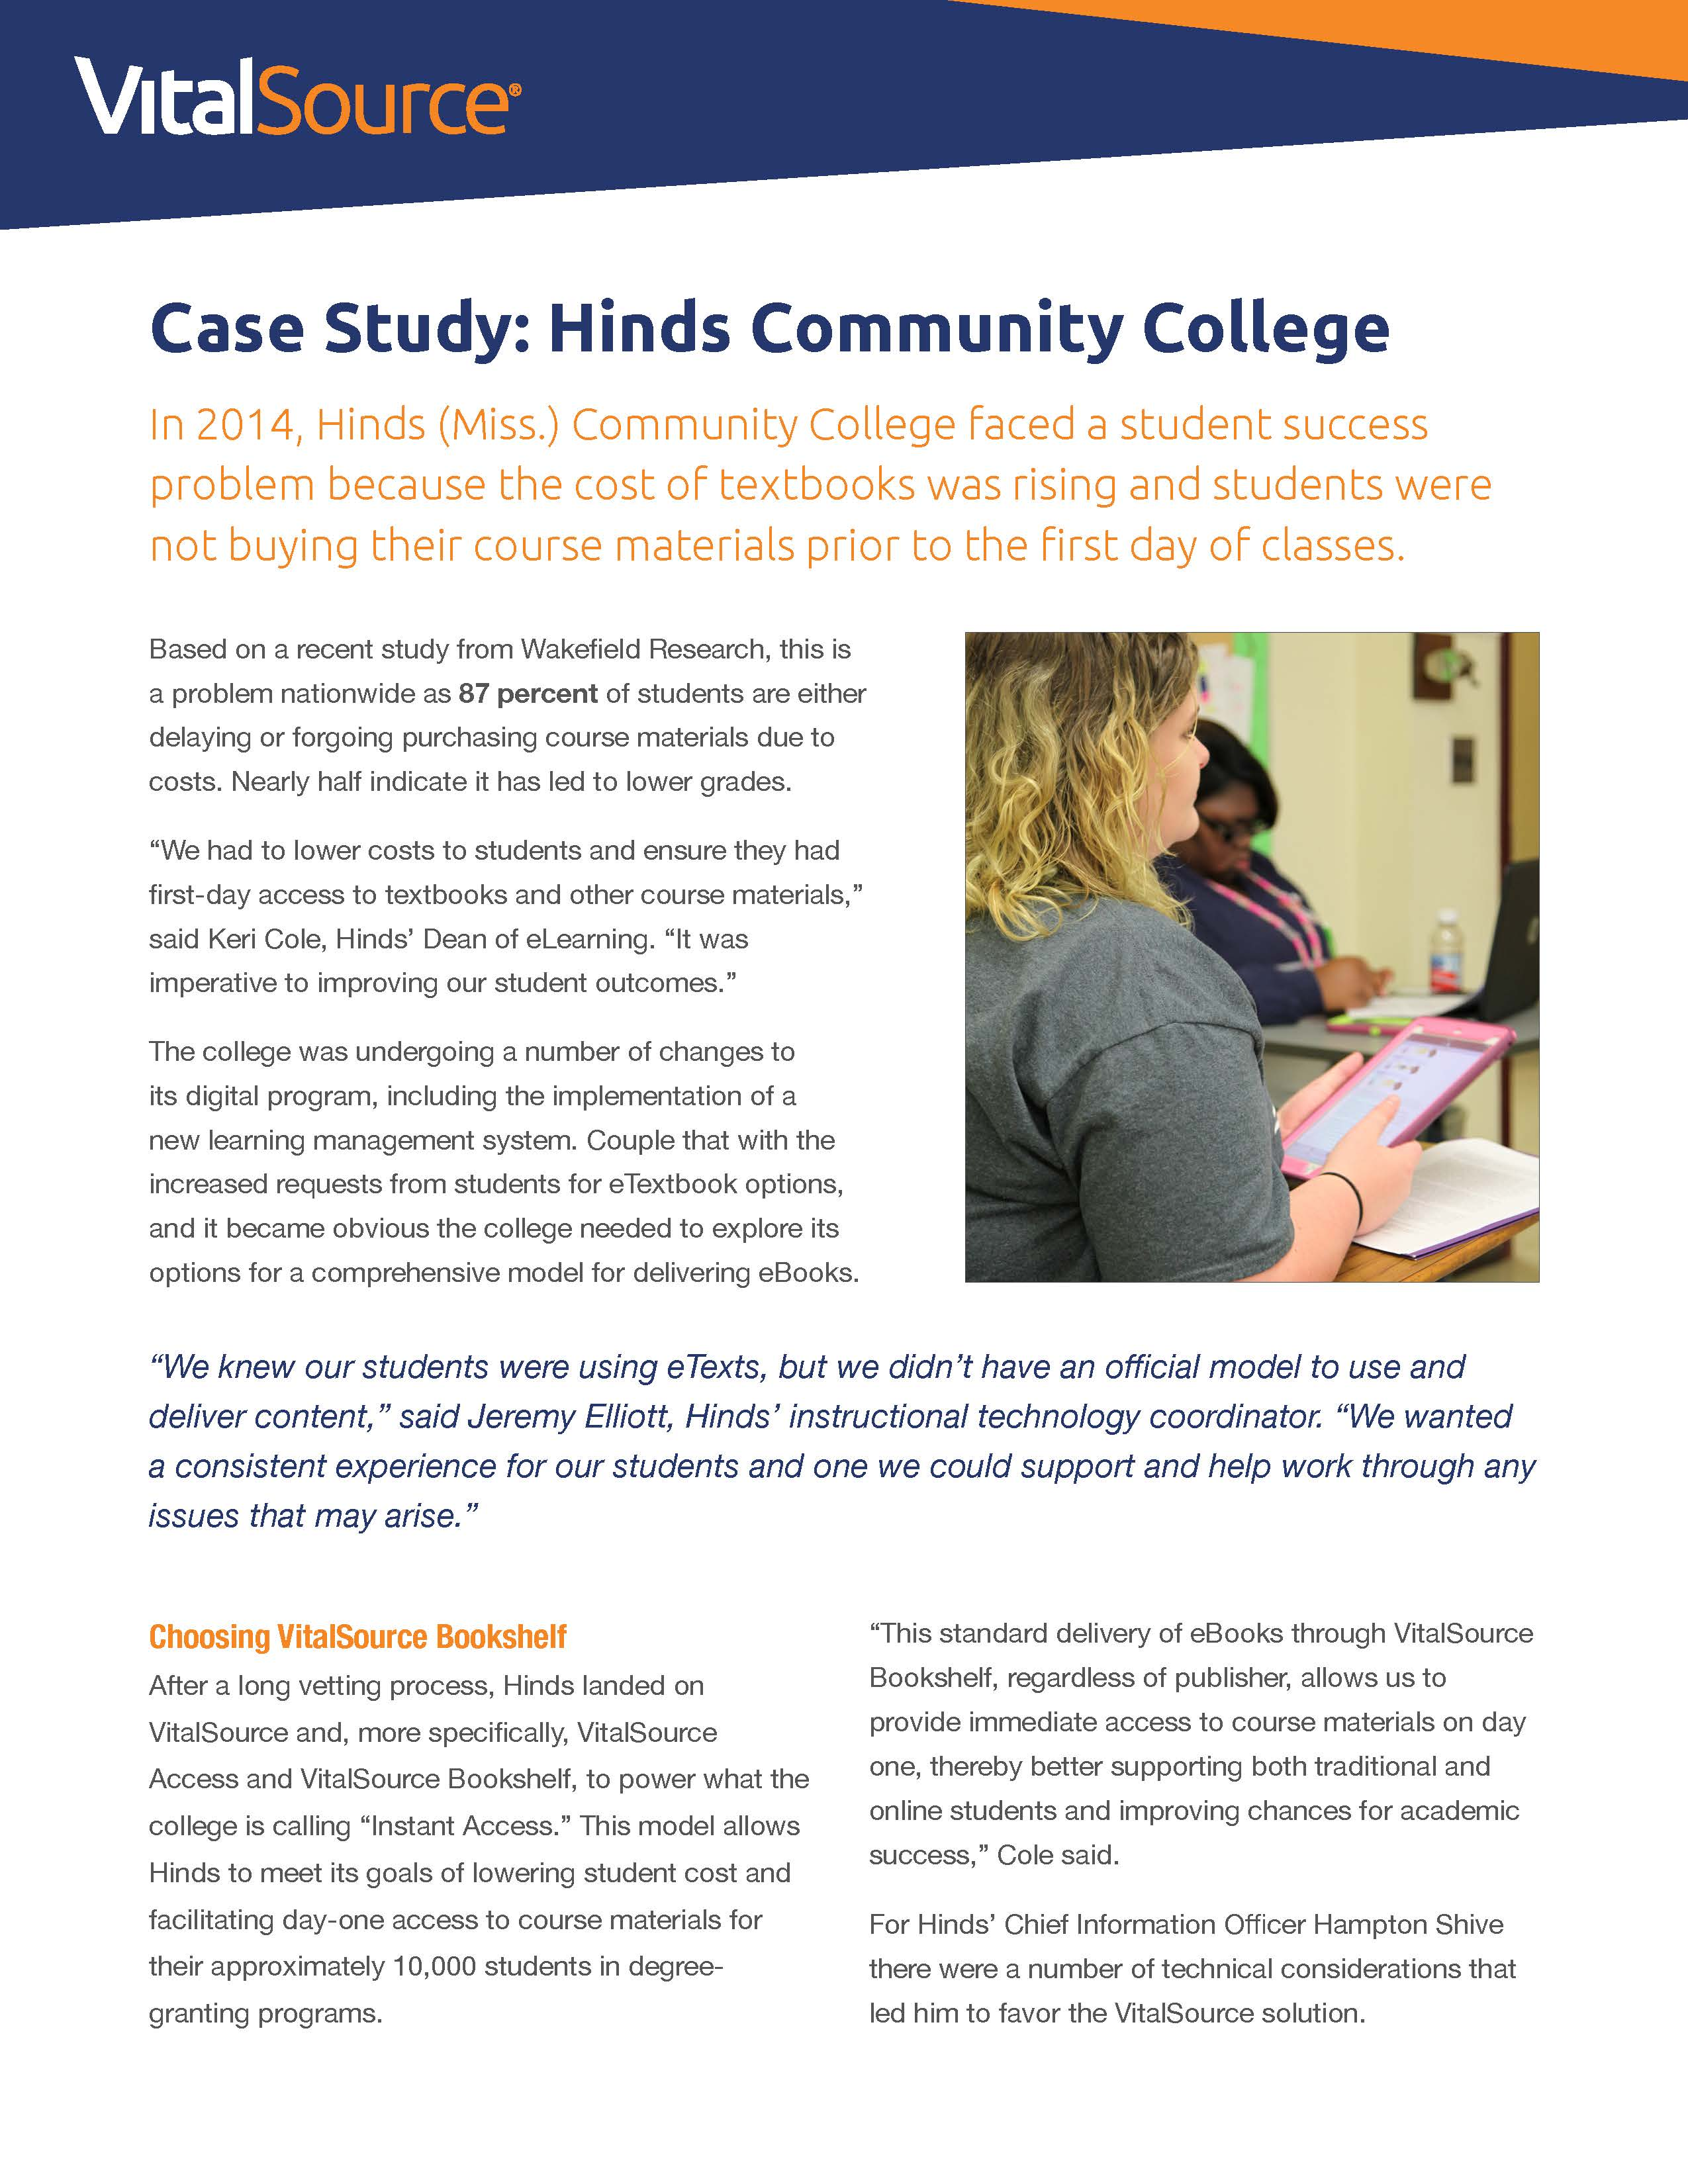 Hinds Community College case study